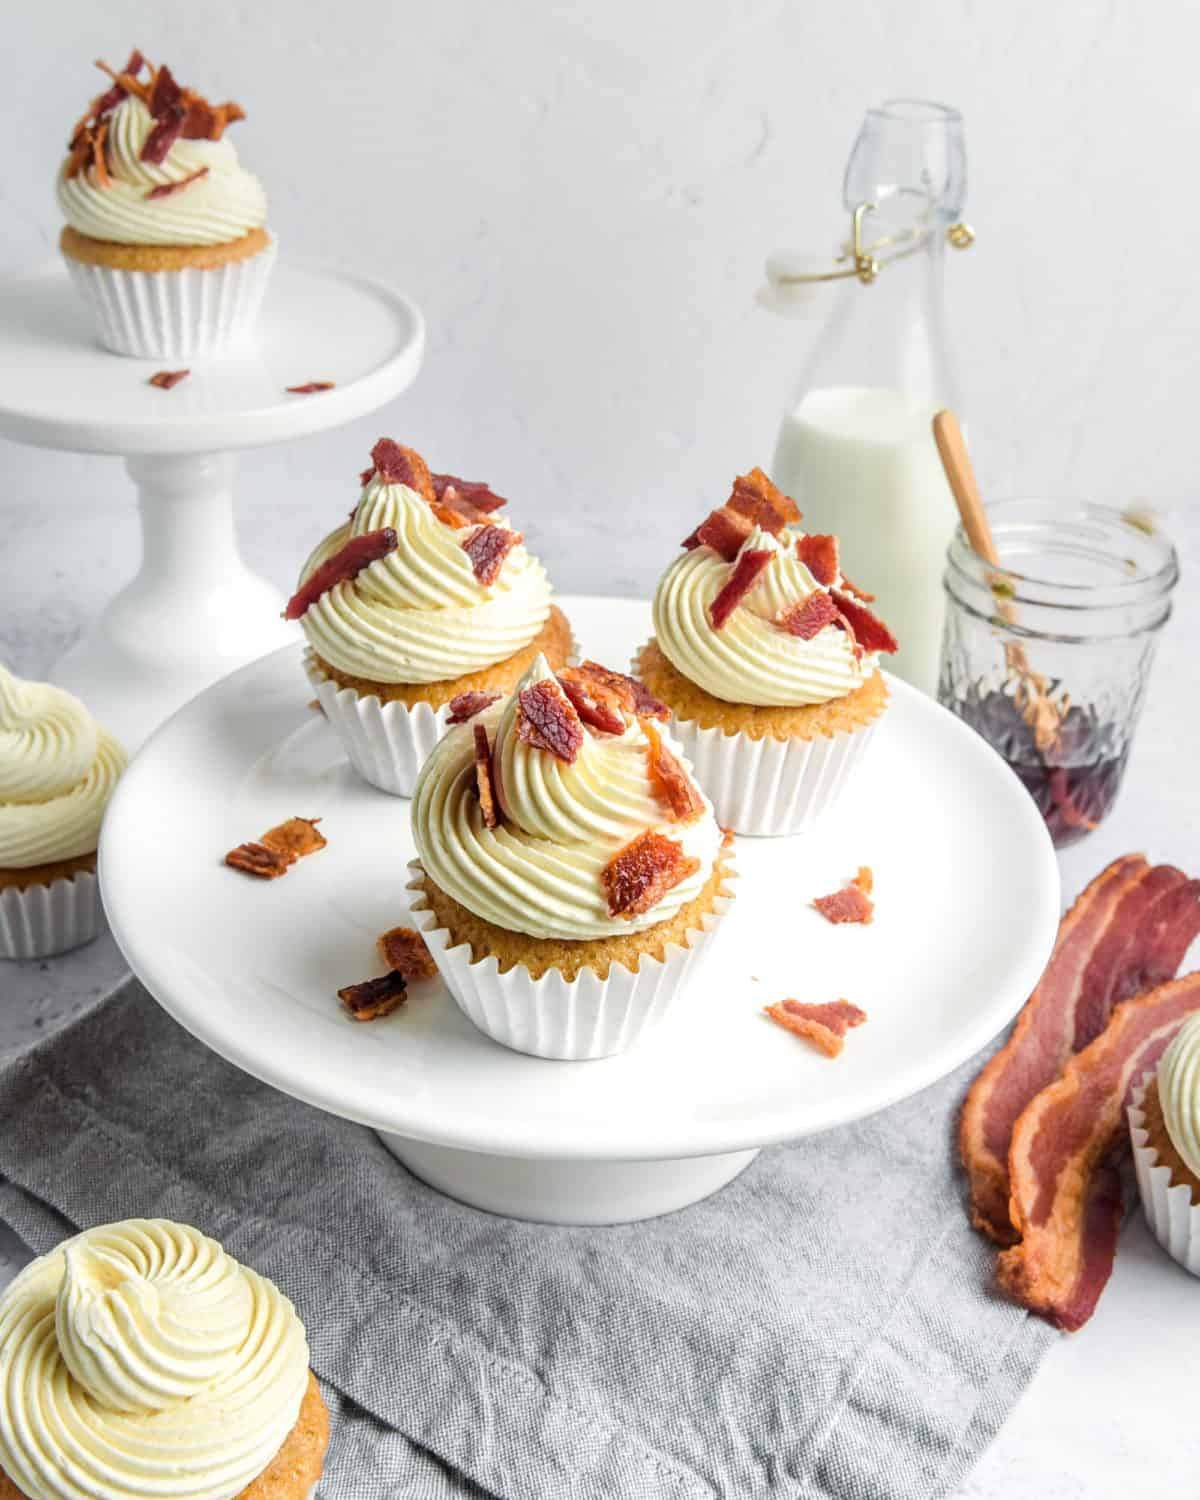 Several finished cupcakes from overhead with bacon on the top.